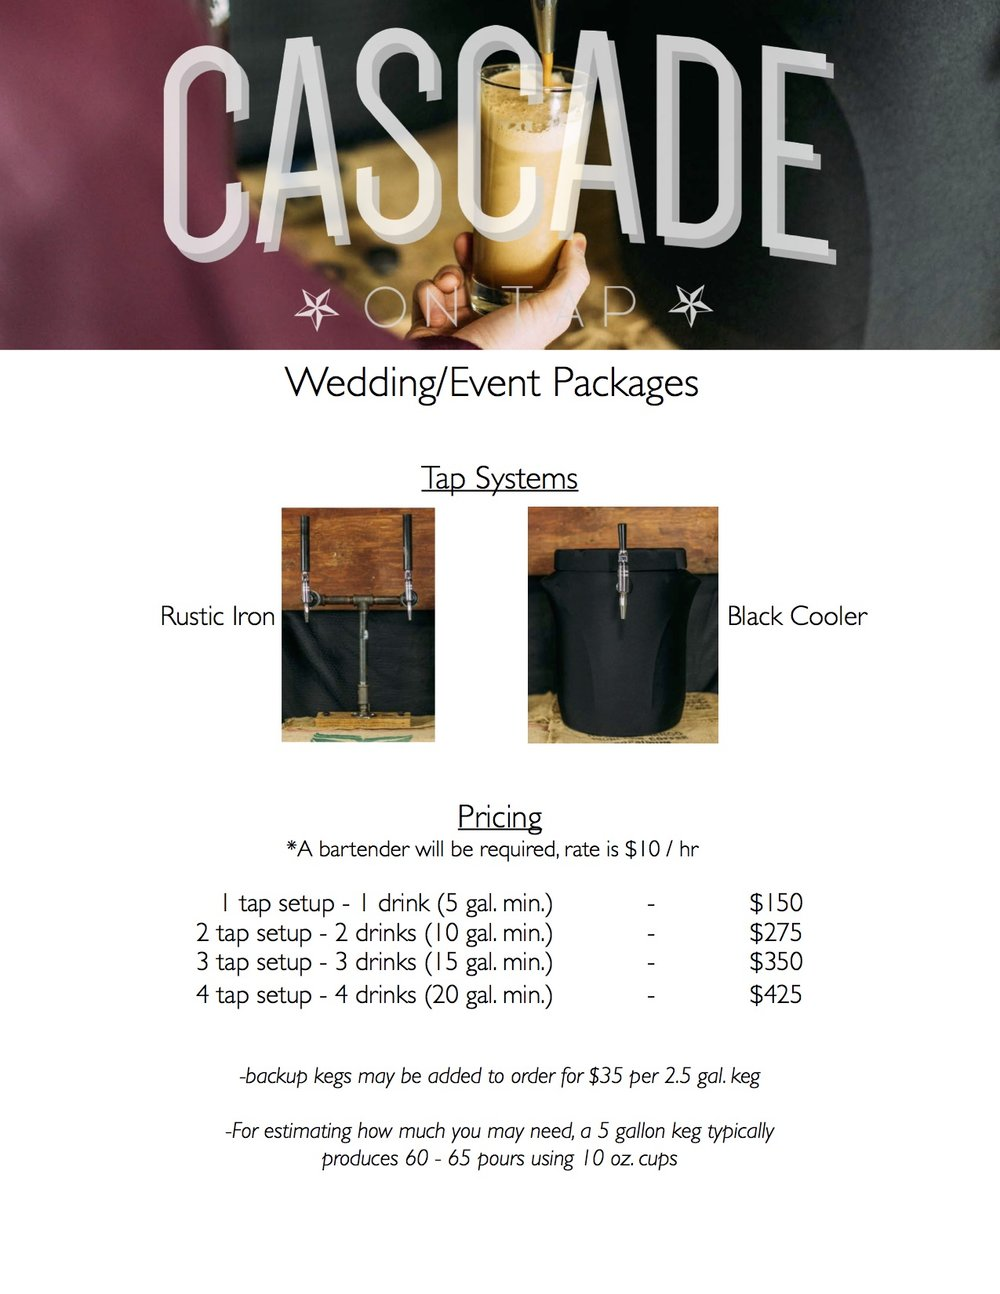 Cascade Wedding Pricing.jpg